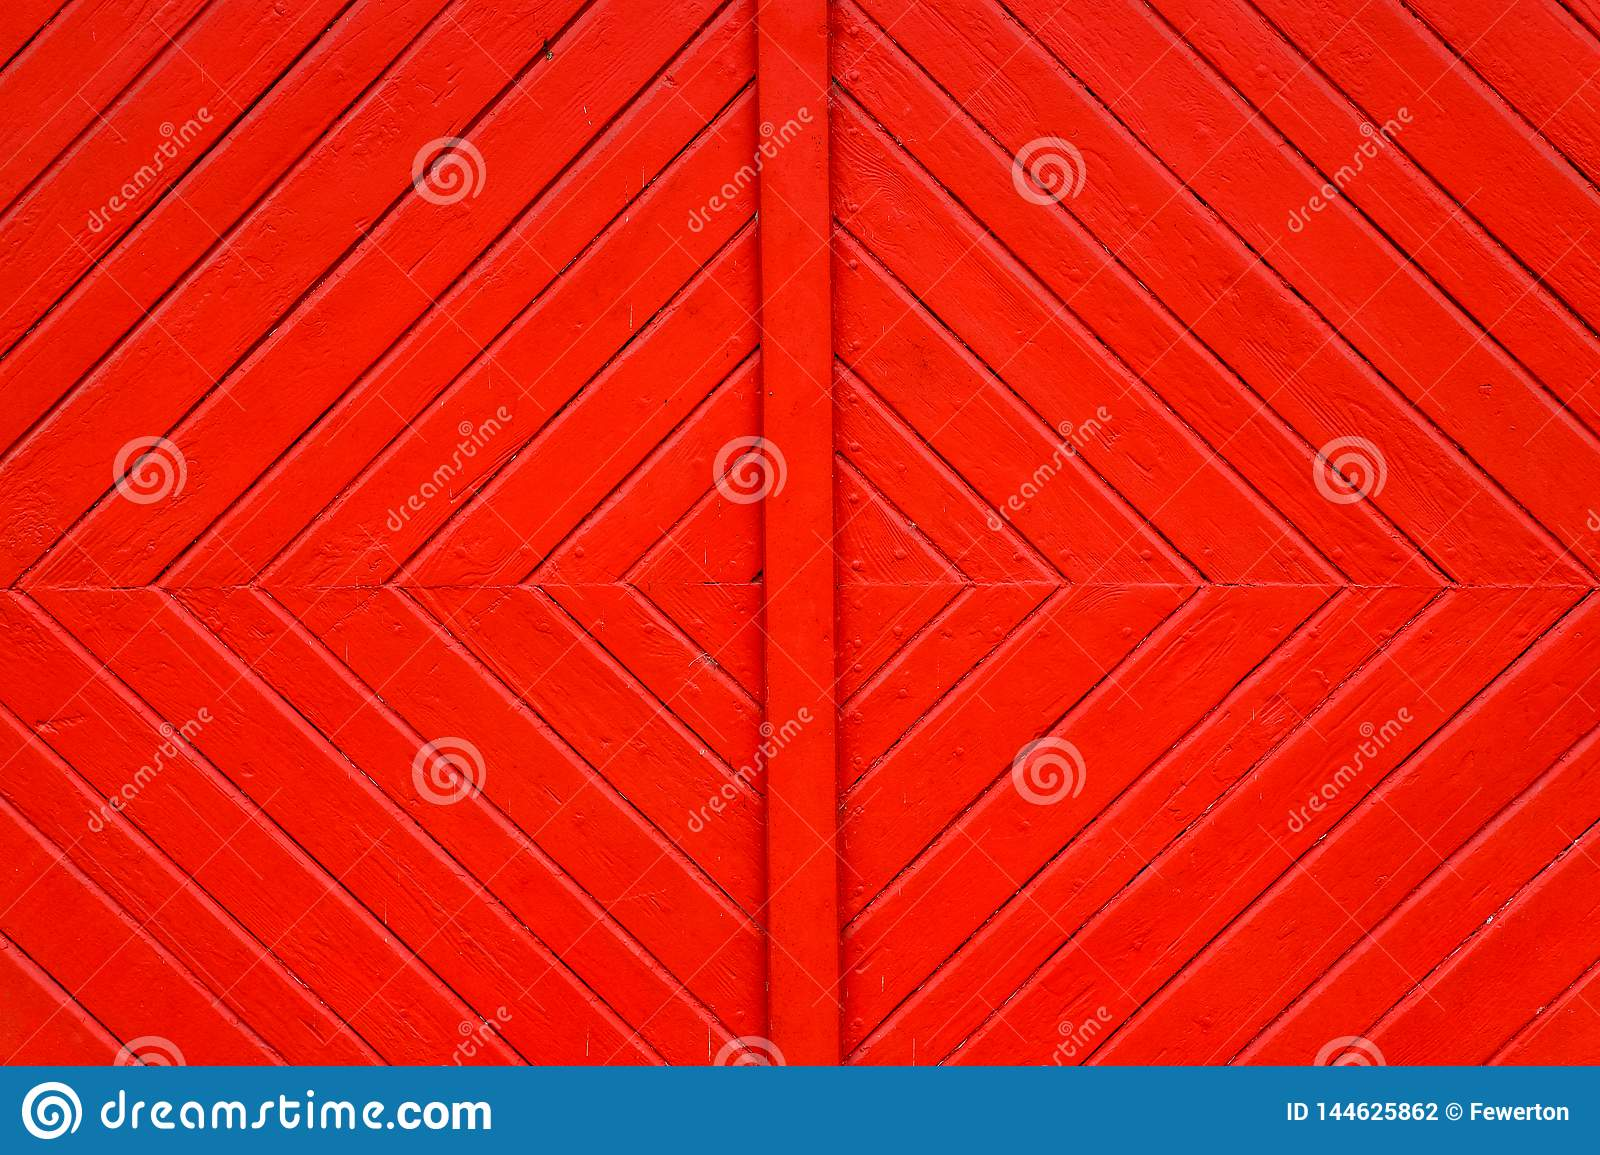 Old grungy and weathered red orange painted wooden wall plank door detail with diagonal lines forming squares as simple saturated